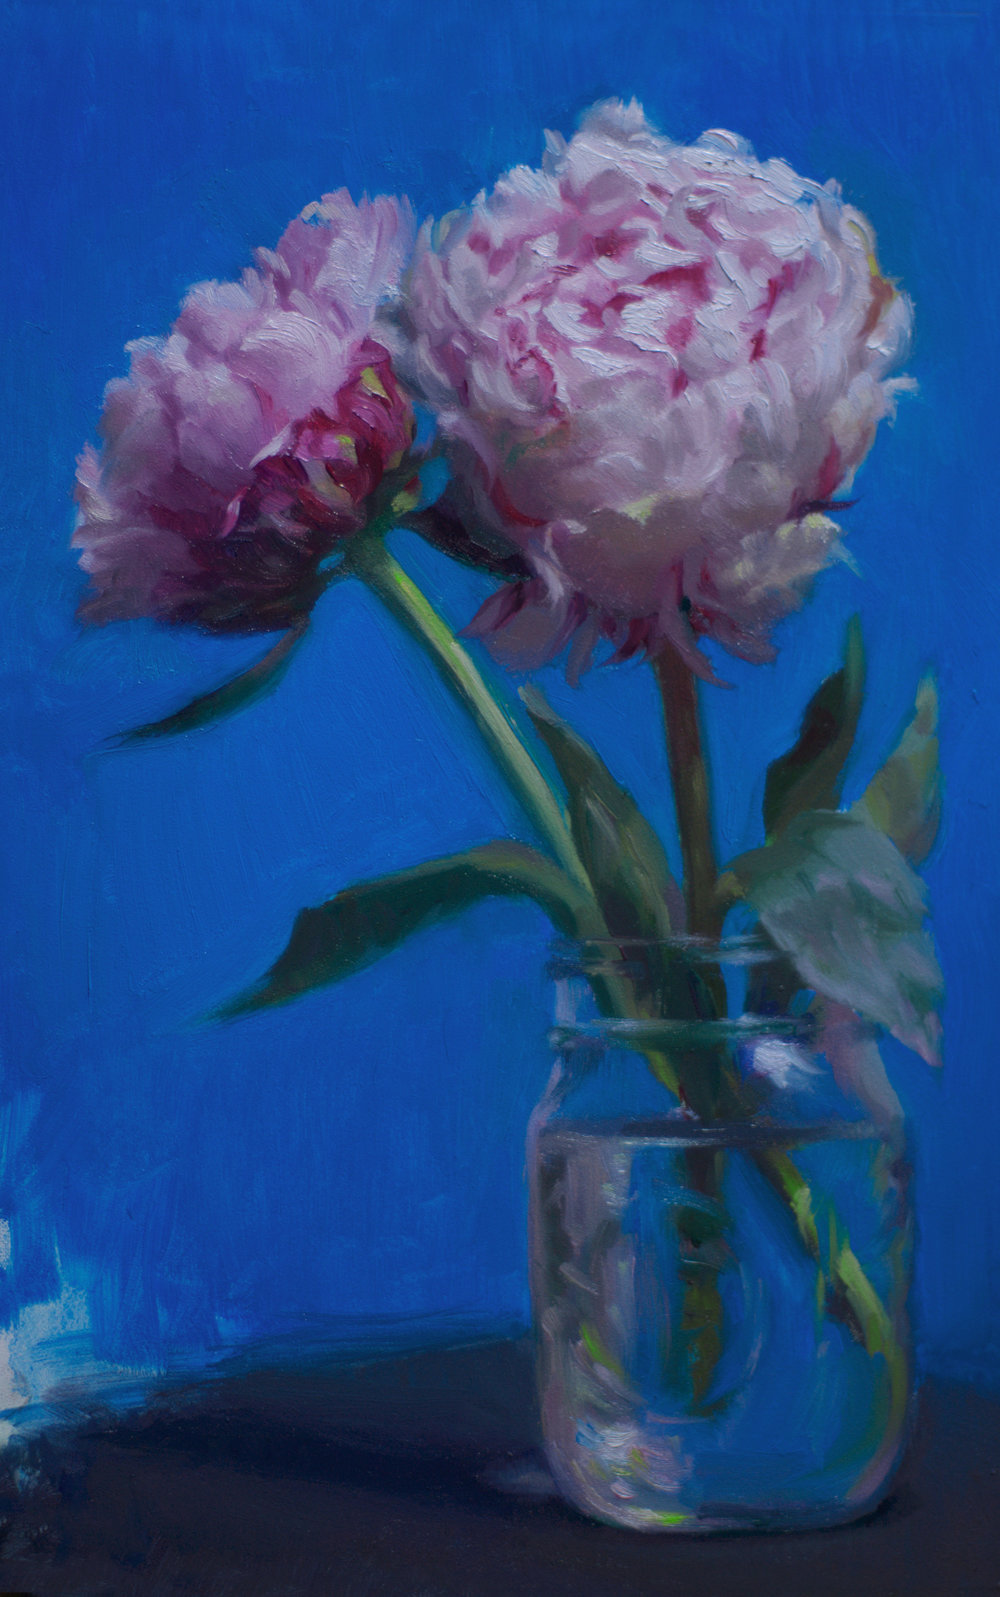 peonies_in_glass_1.jpg